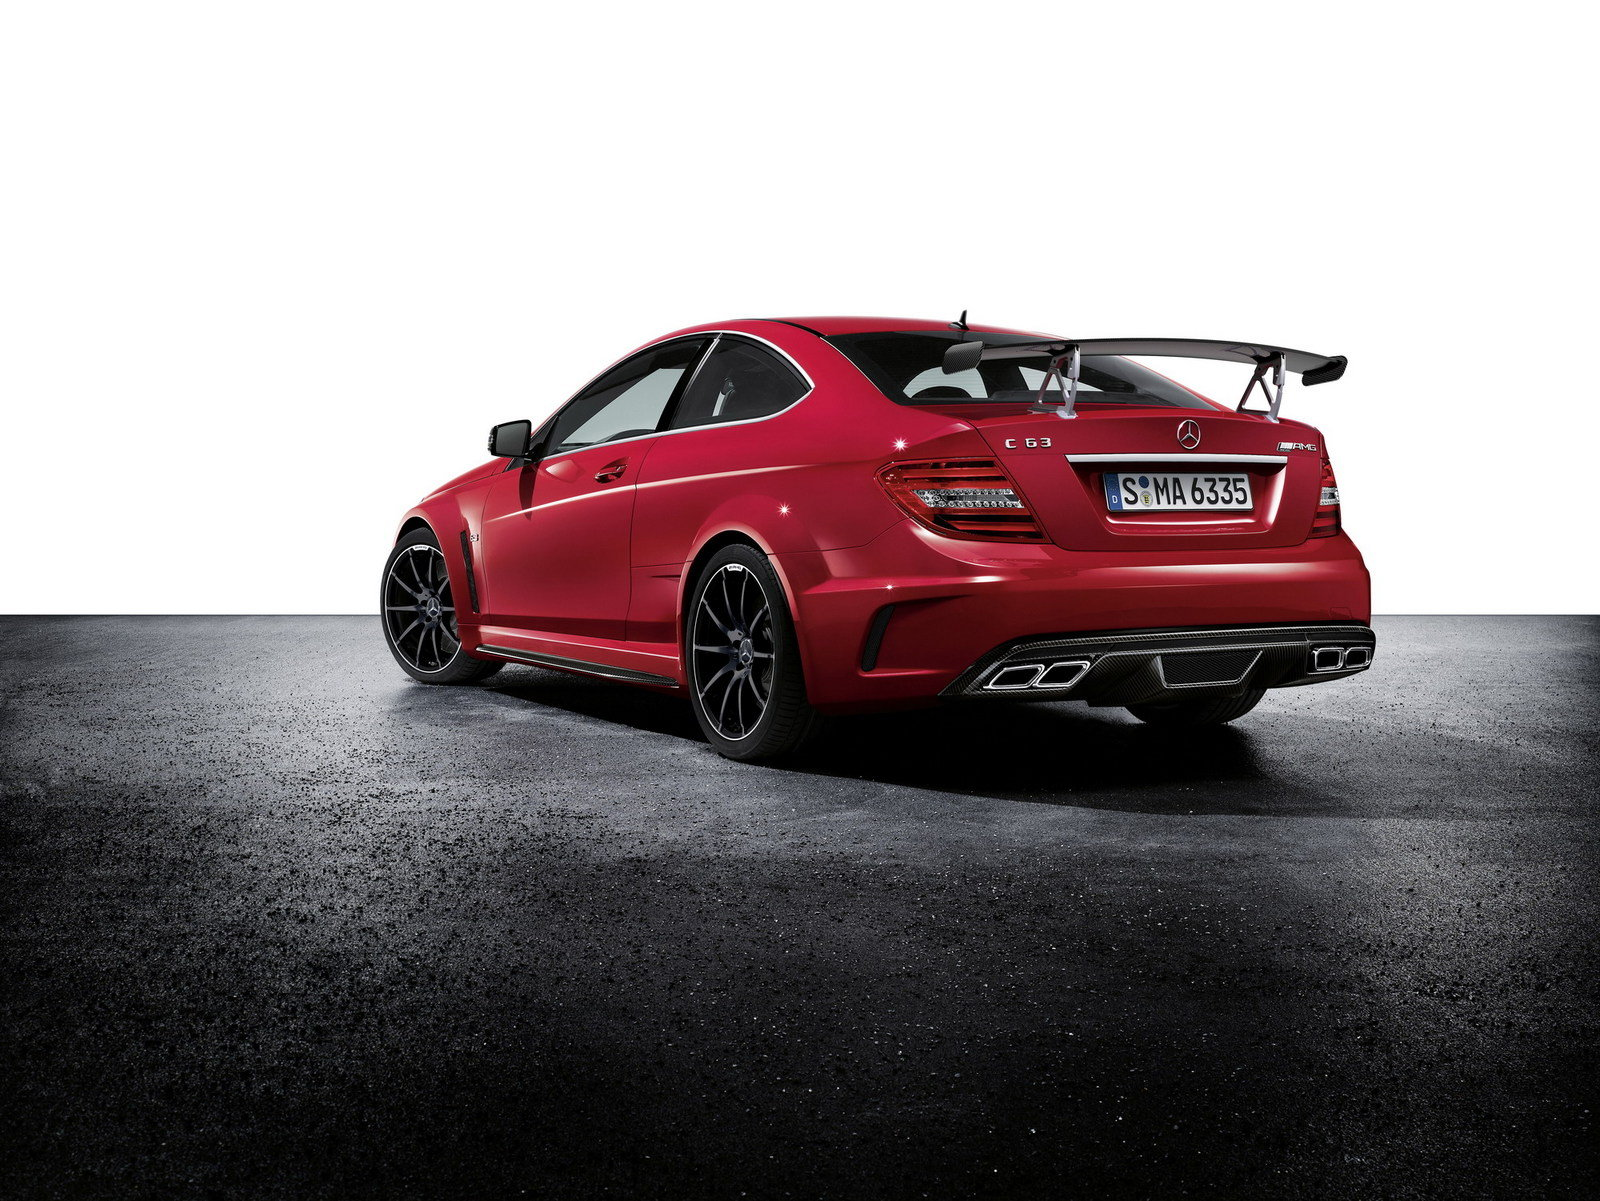 2013 mercedes c63 amg black series coupe picture 426927 car review top speed. Black Bedroom Furniture Sets. Home Design Ideas